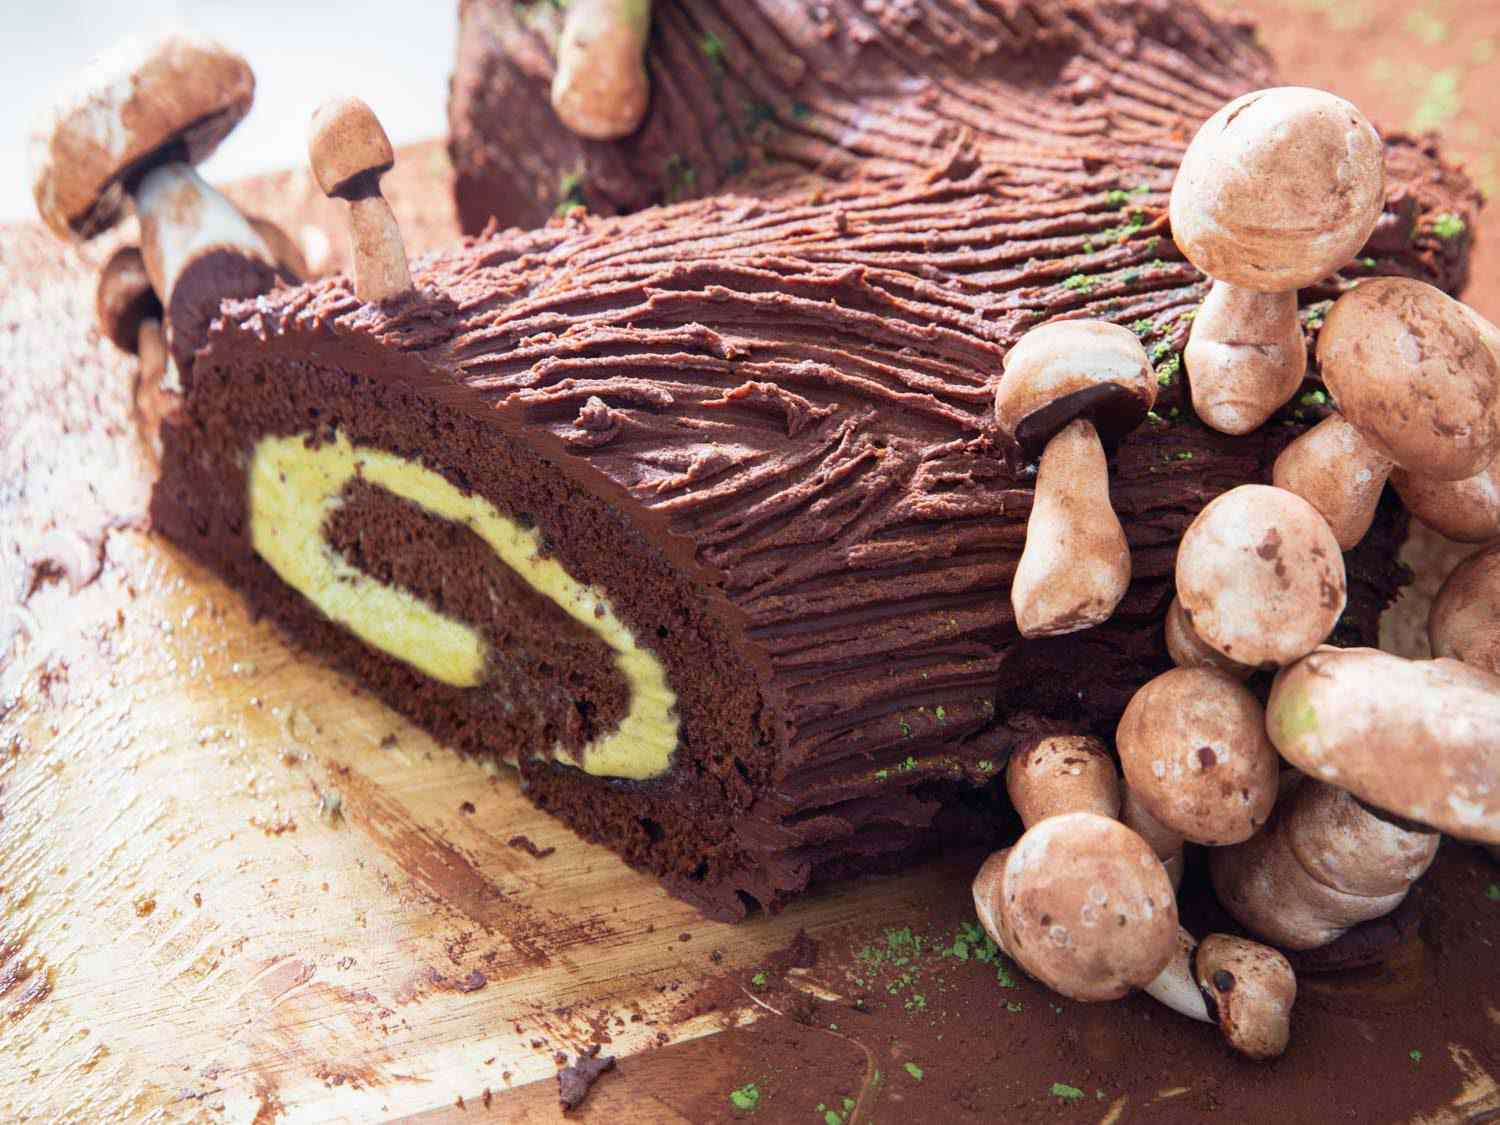 A chocolate and pistachio yule log with meringue mushrooms